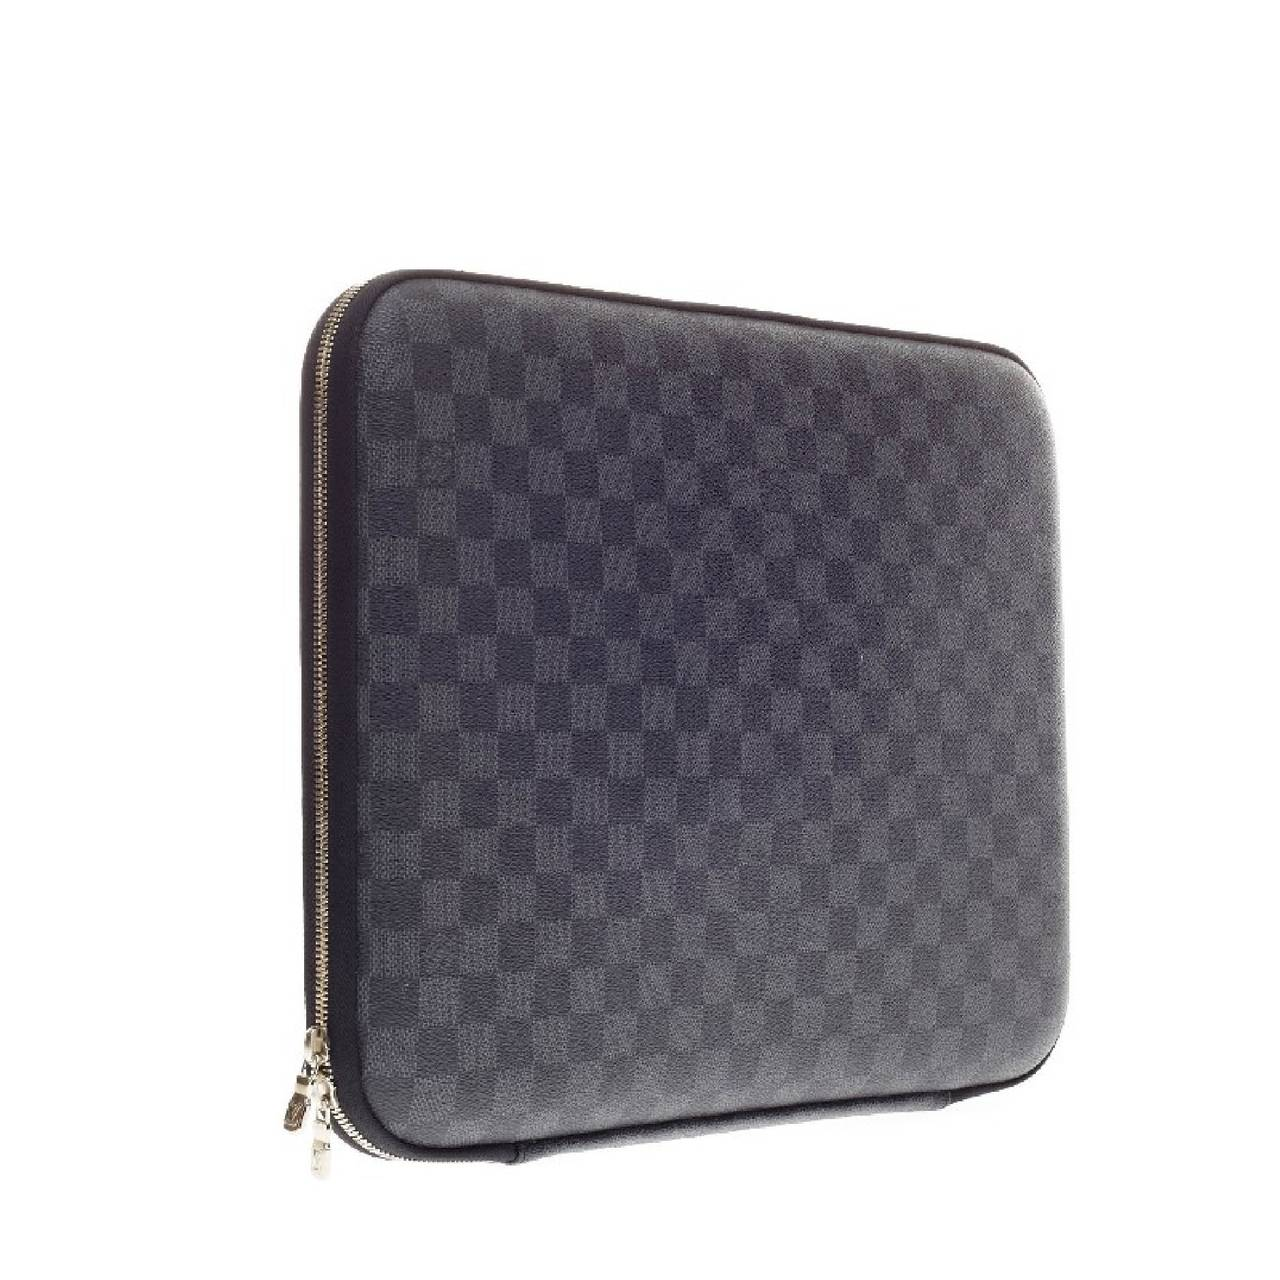 Louis Vuitton Laptop Sleeve Damier Graphite Canvas 15 In Good Condition For New York